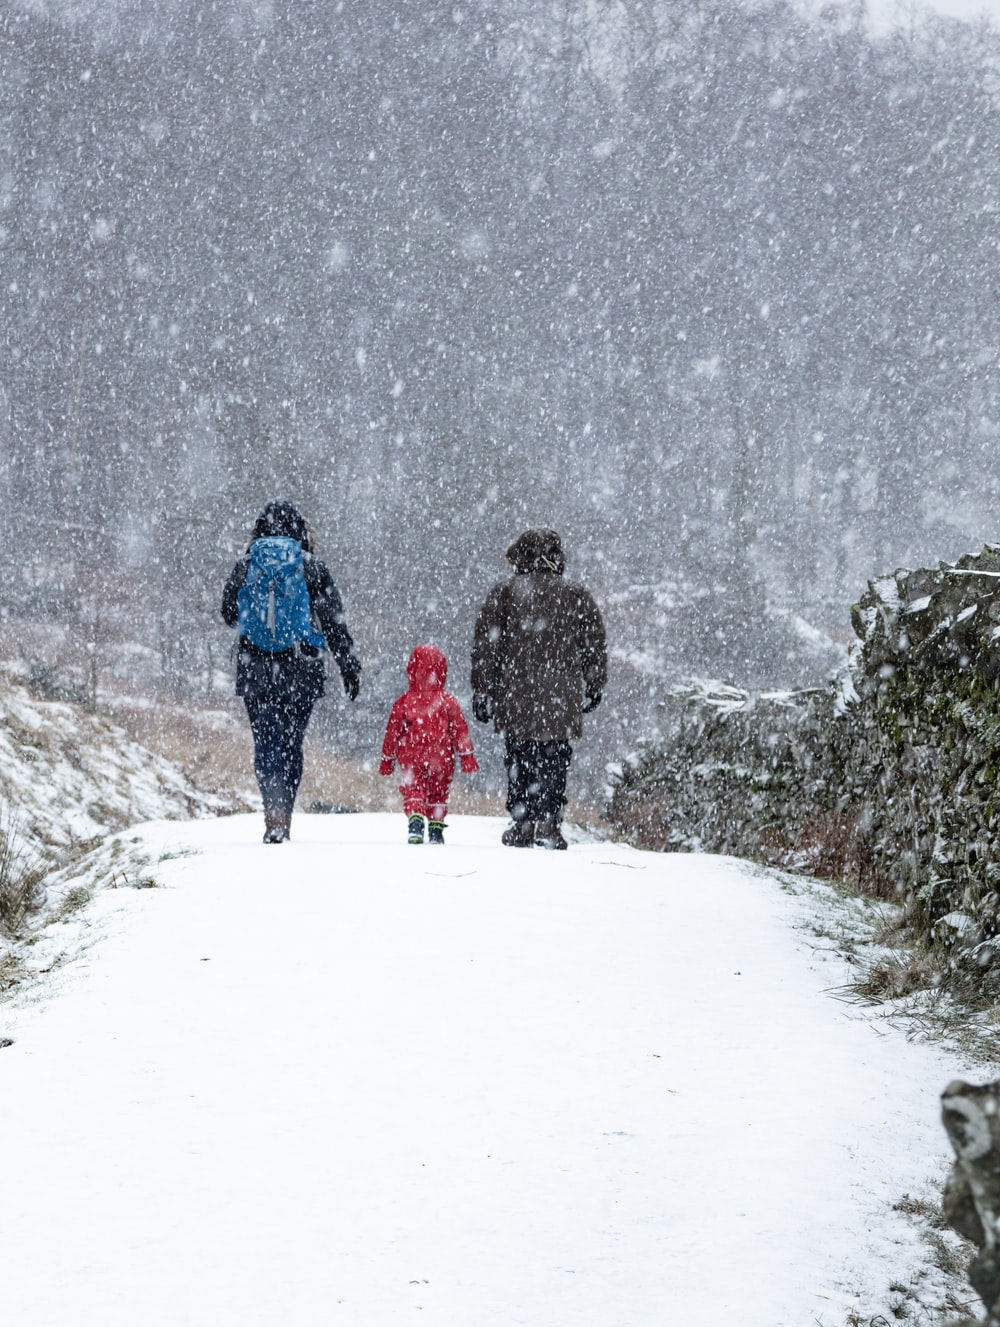 toddler between two person walking on snow